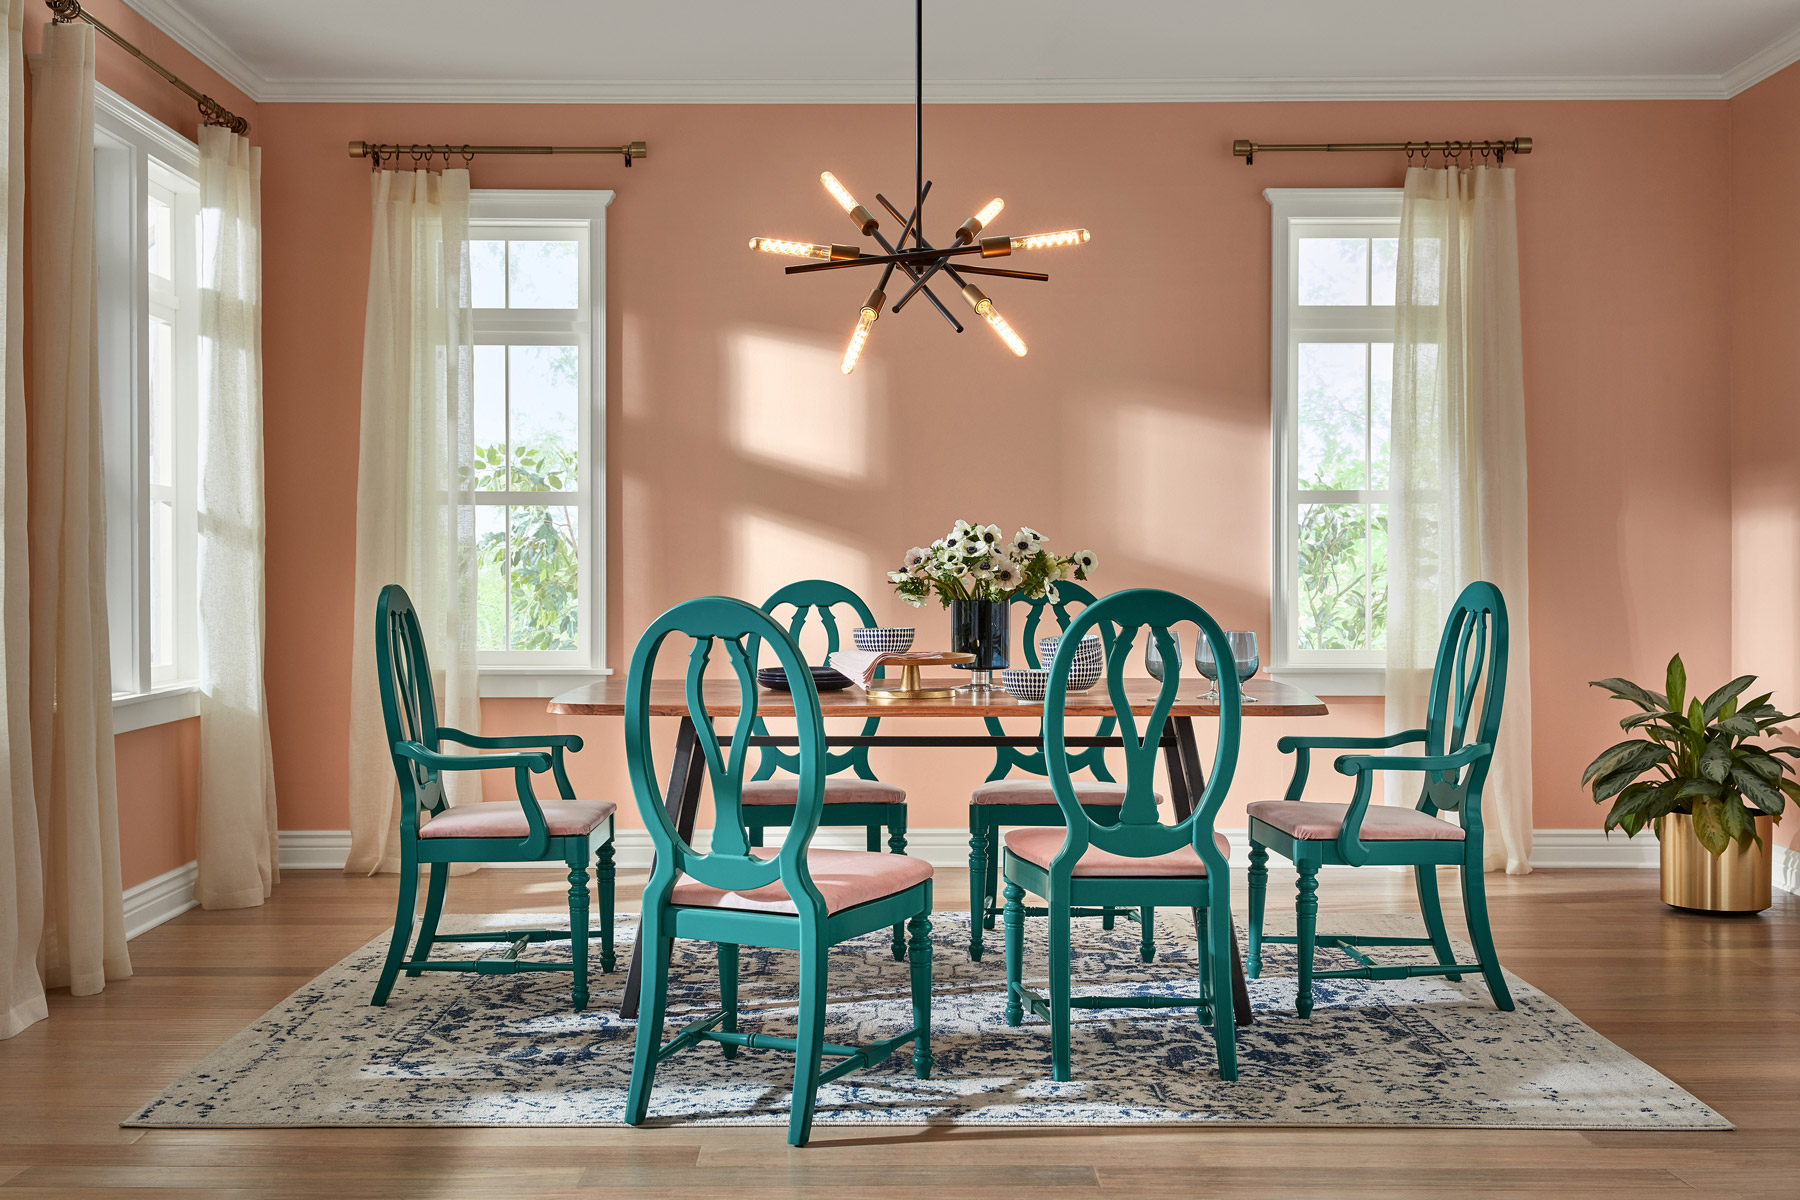 Interior Paint Colors For A Cleaner Looking Home Real Simple